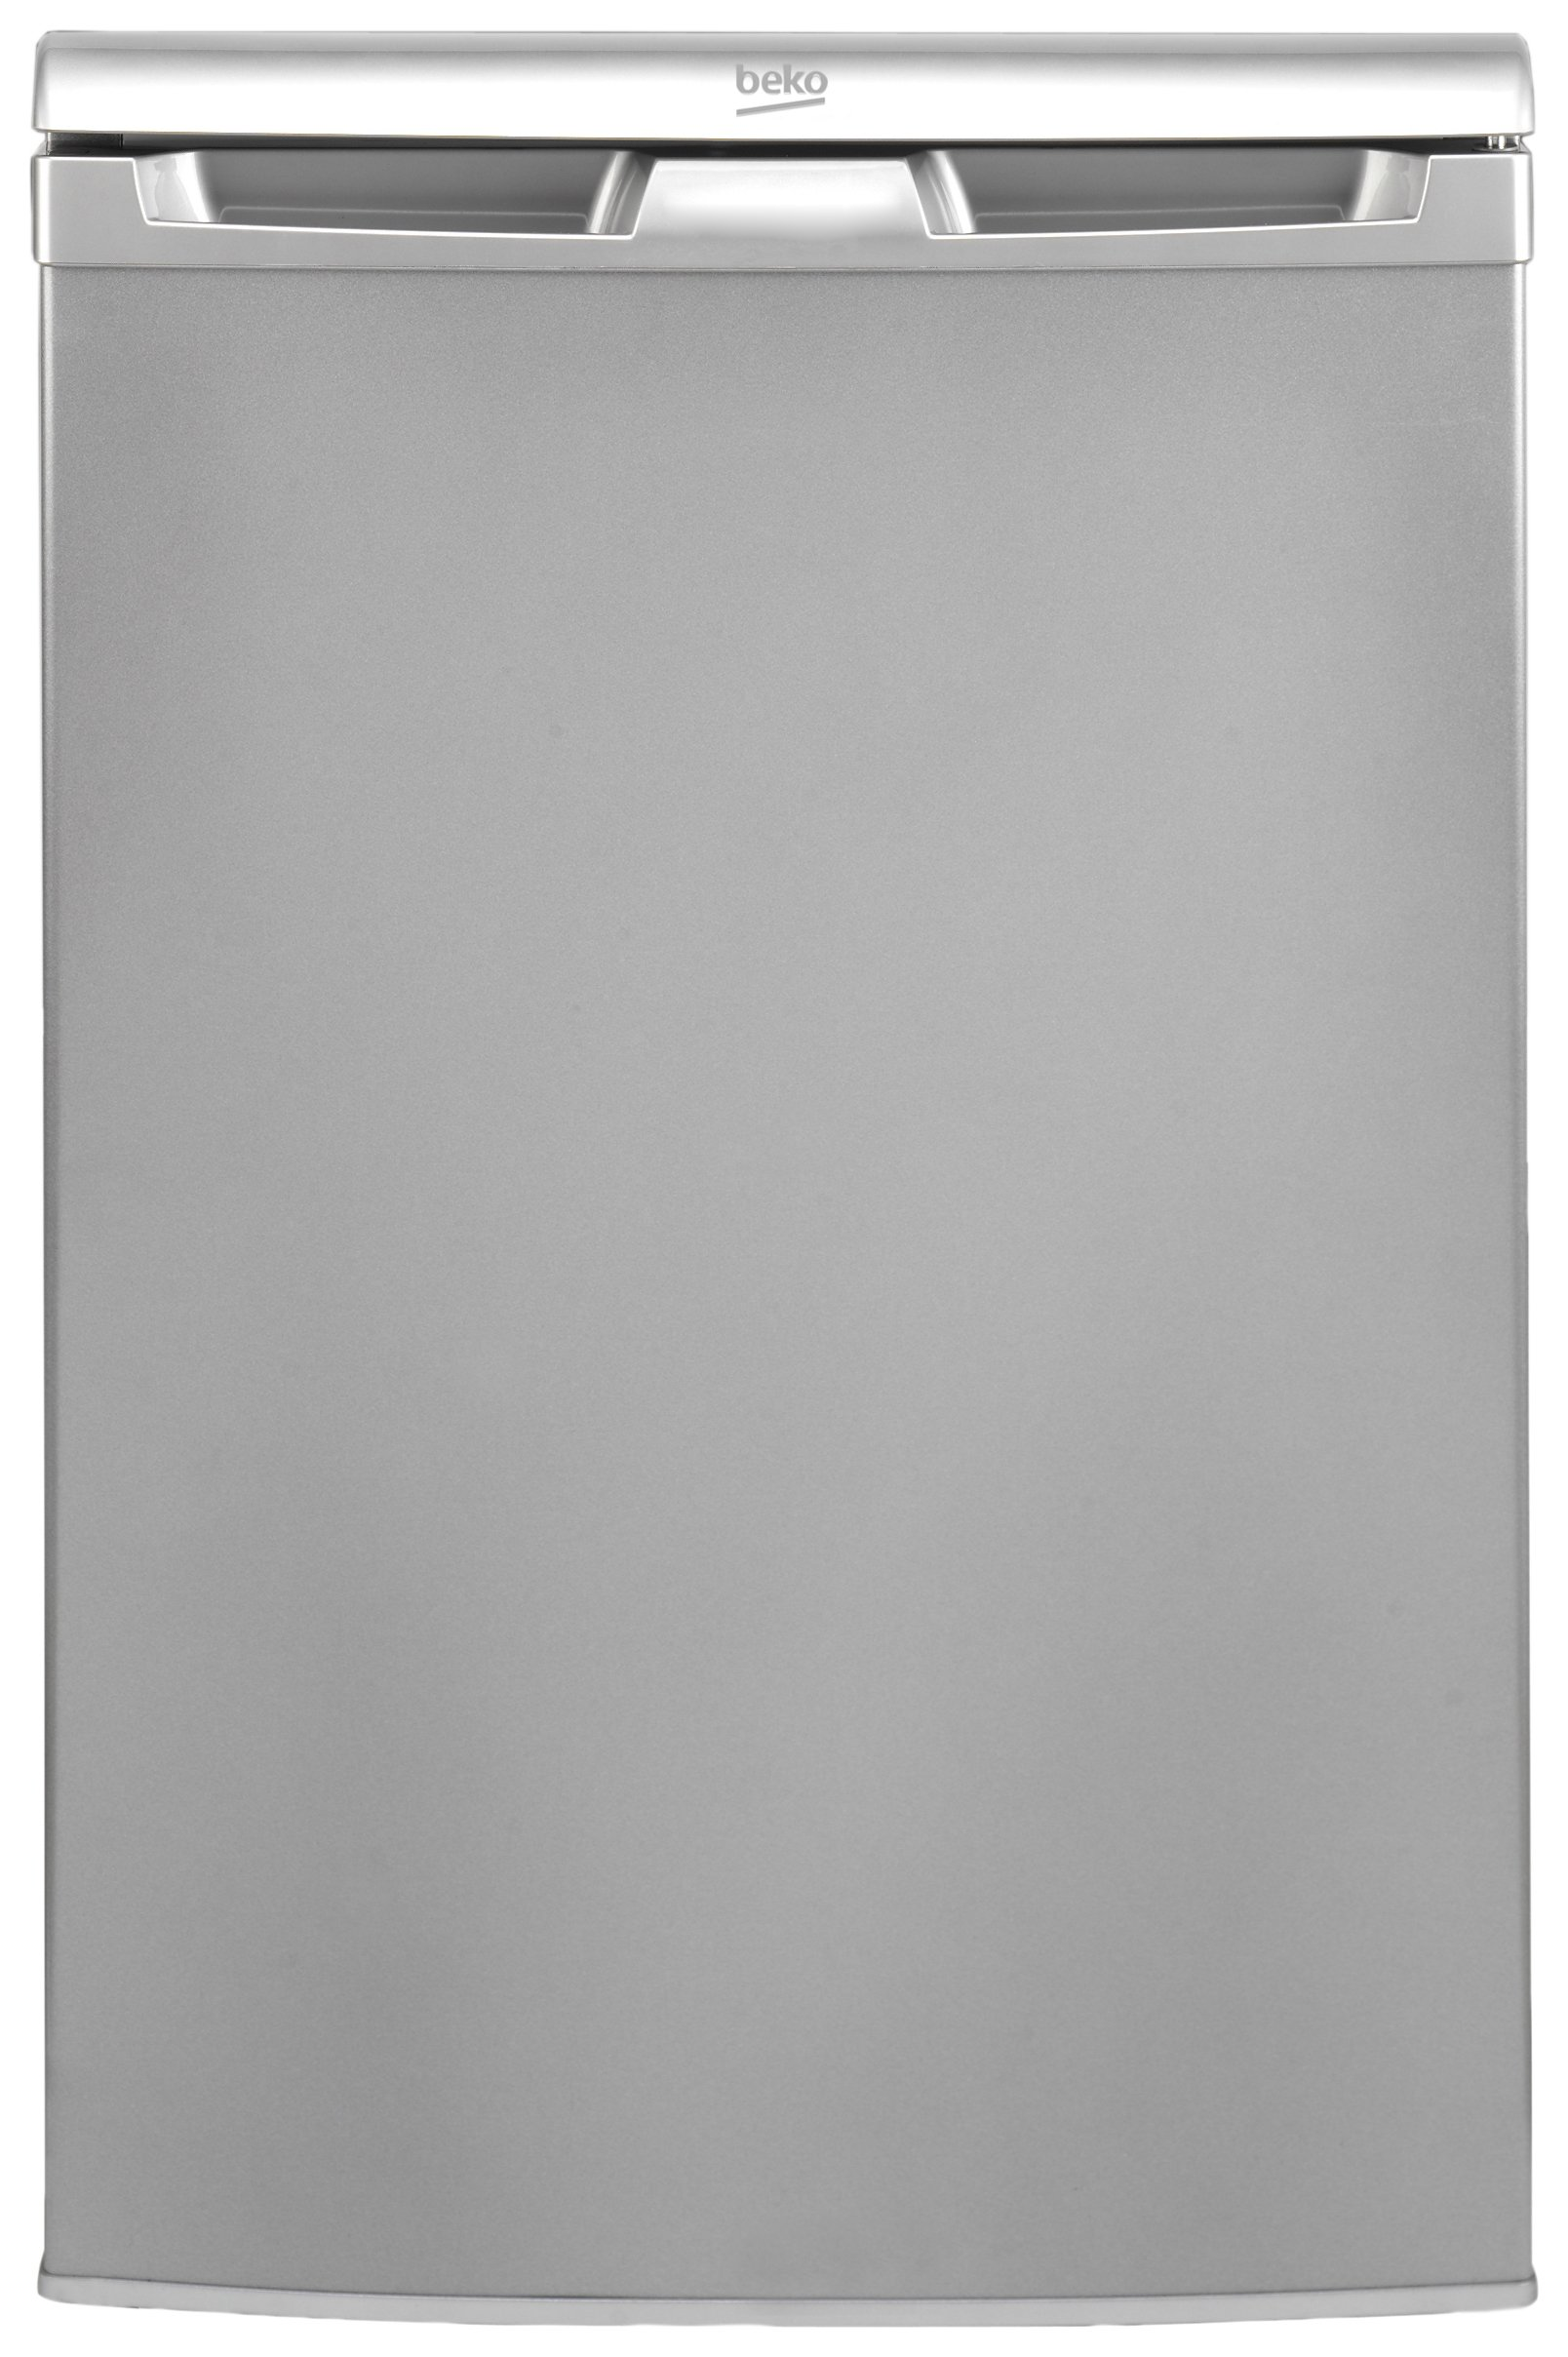 Beko UR584APS Under Counter Fridge - Silver